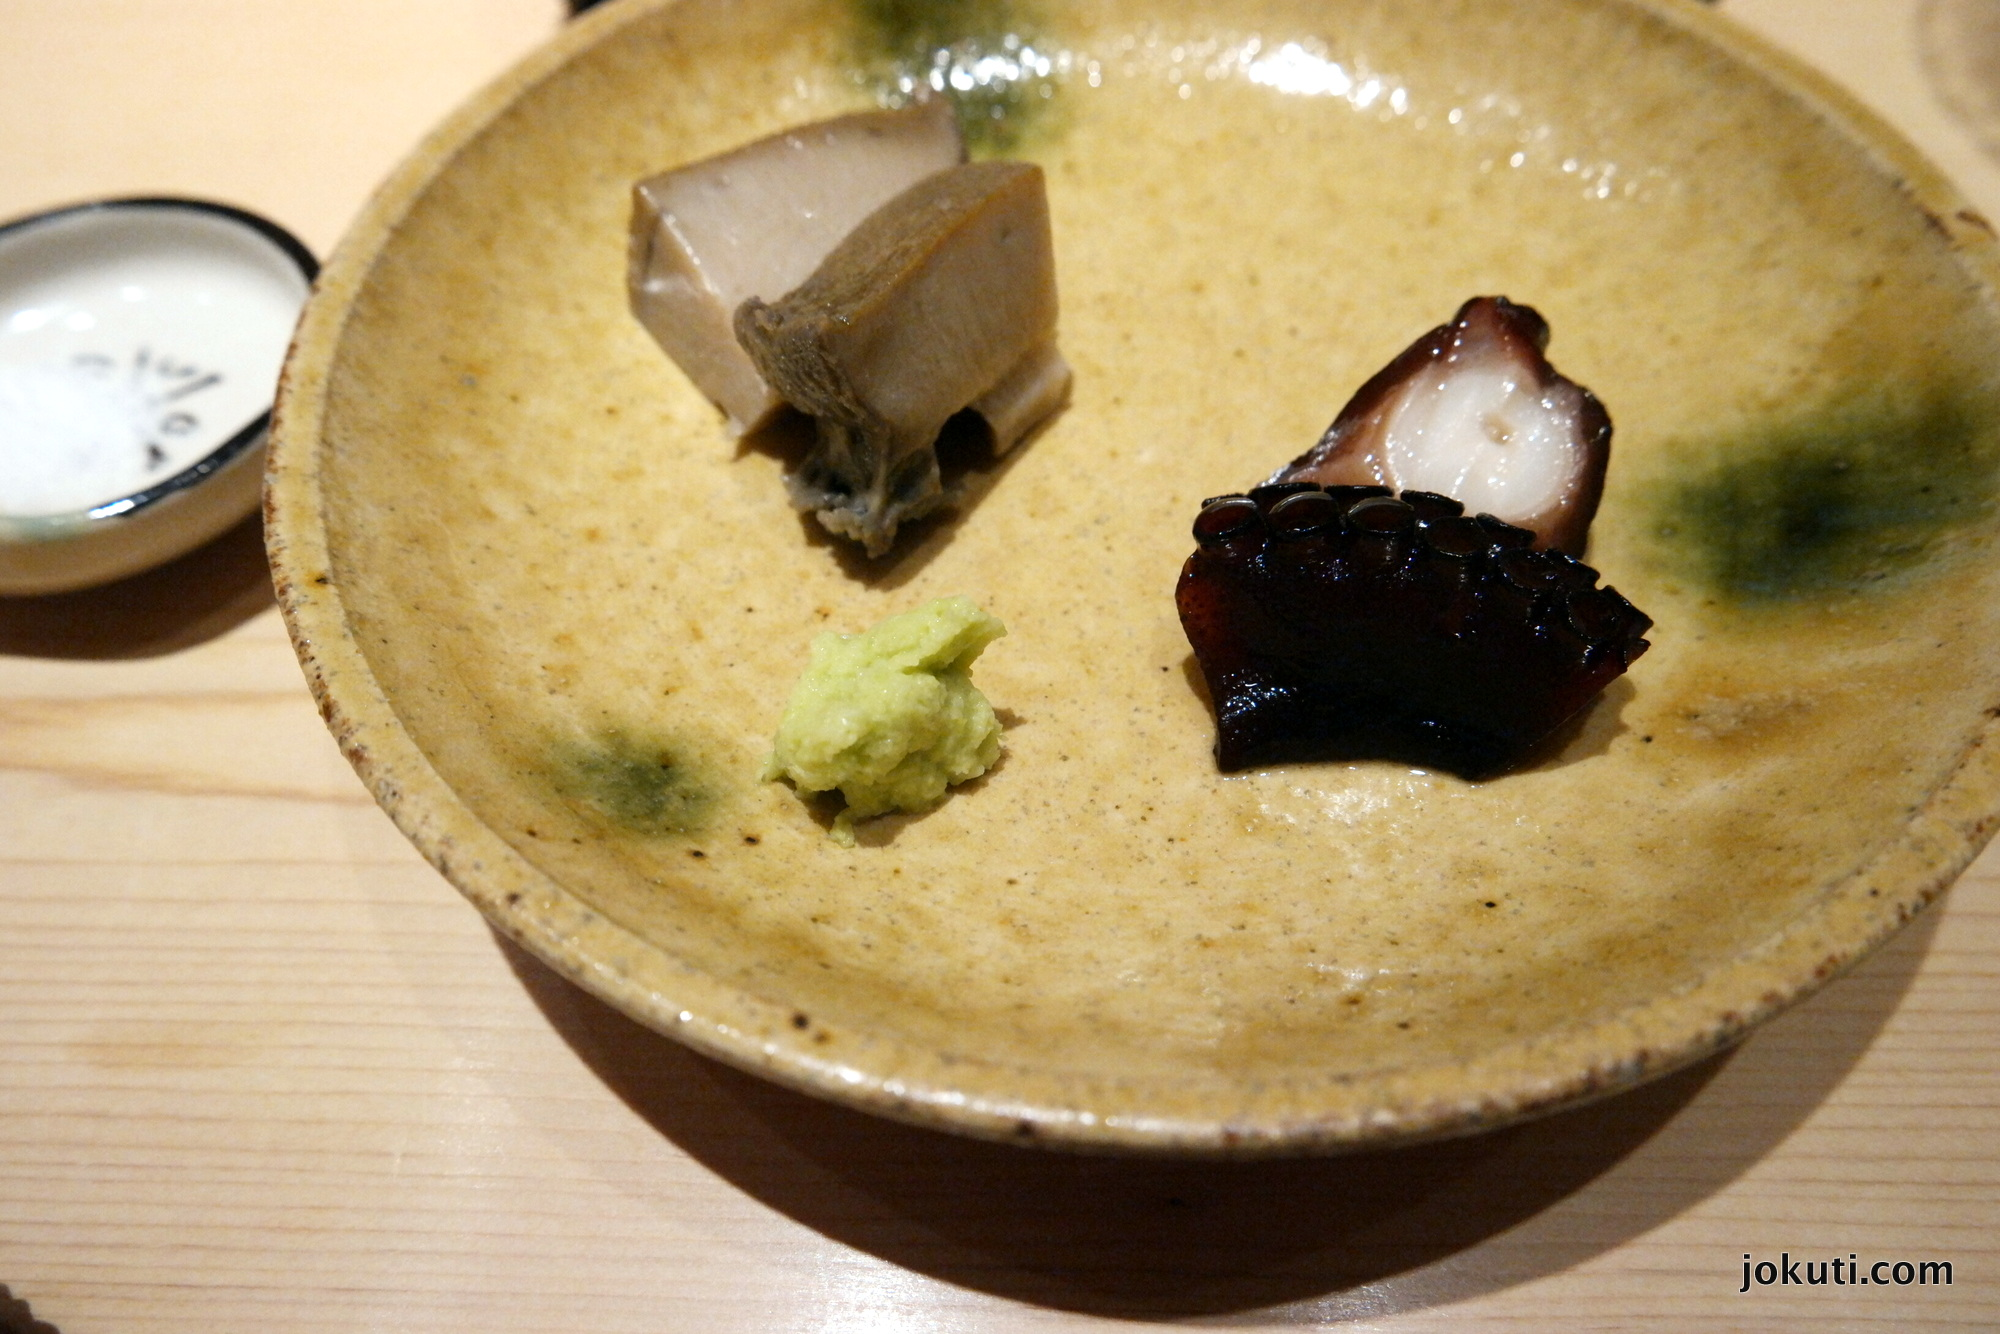 Abalone and octopus.